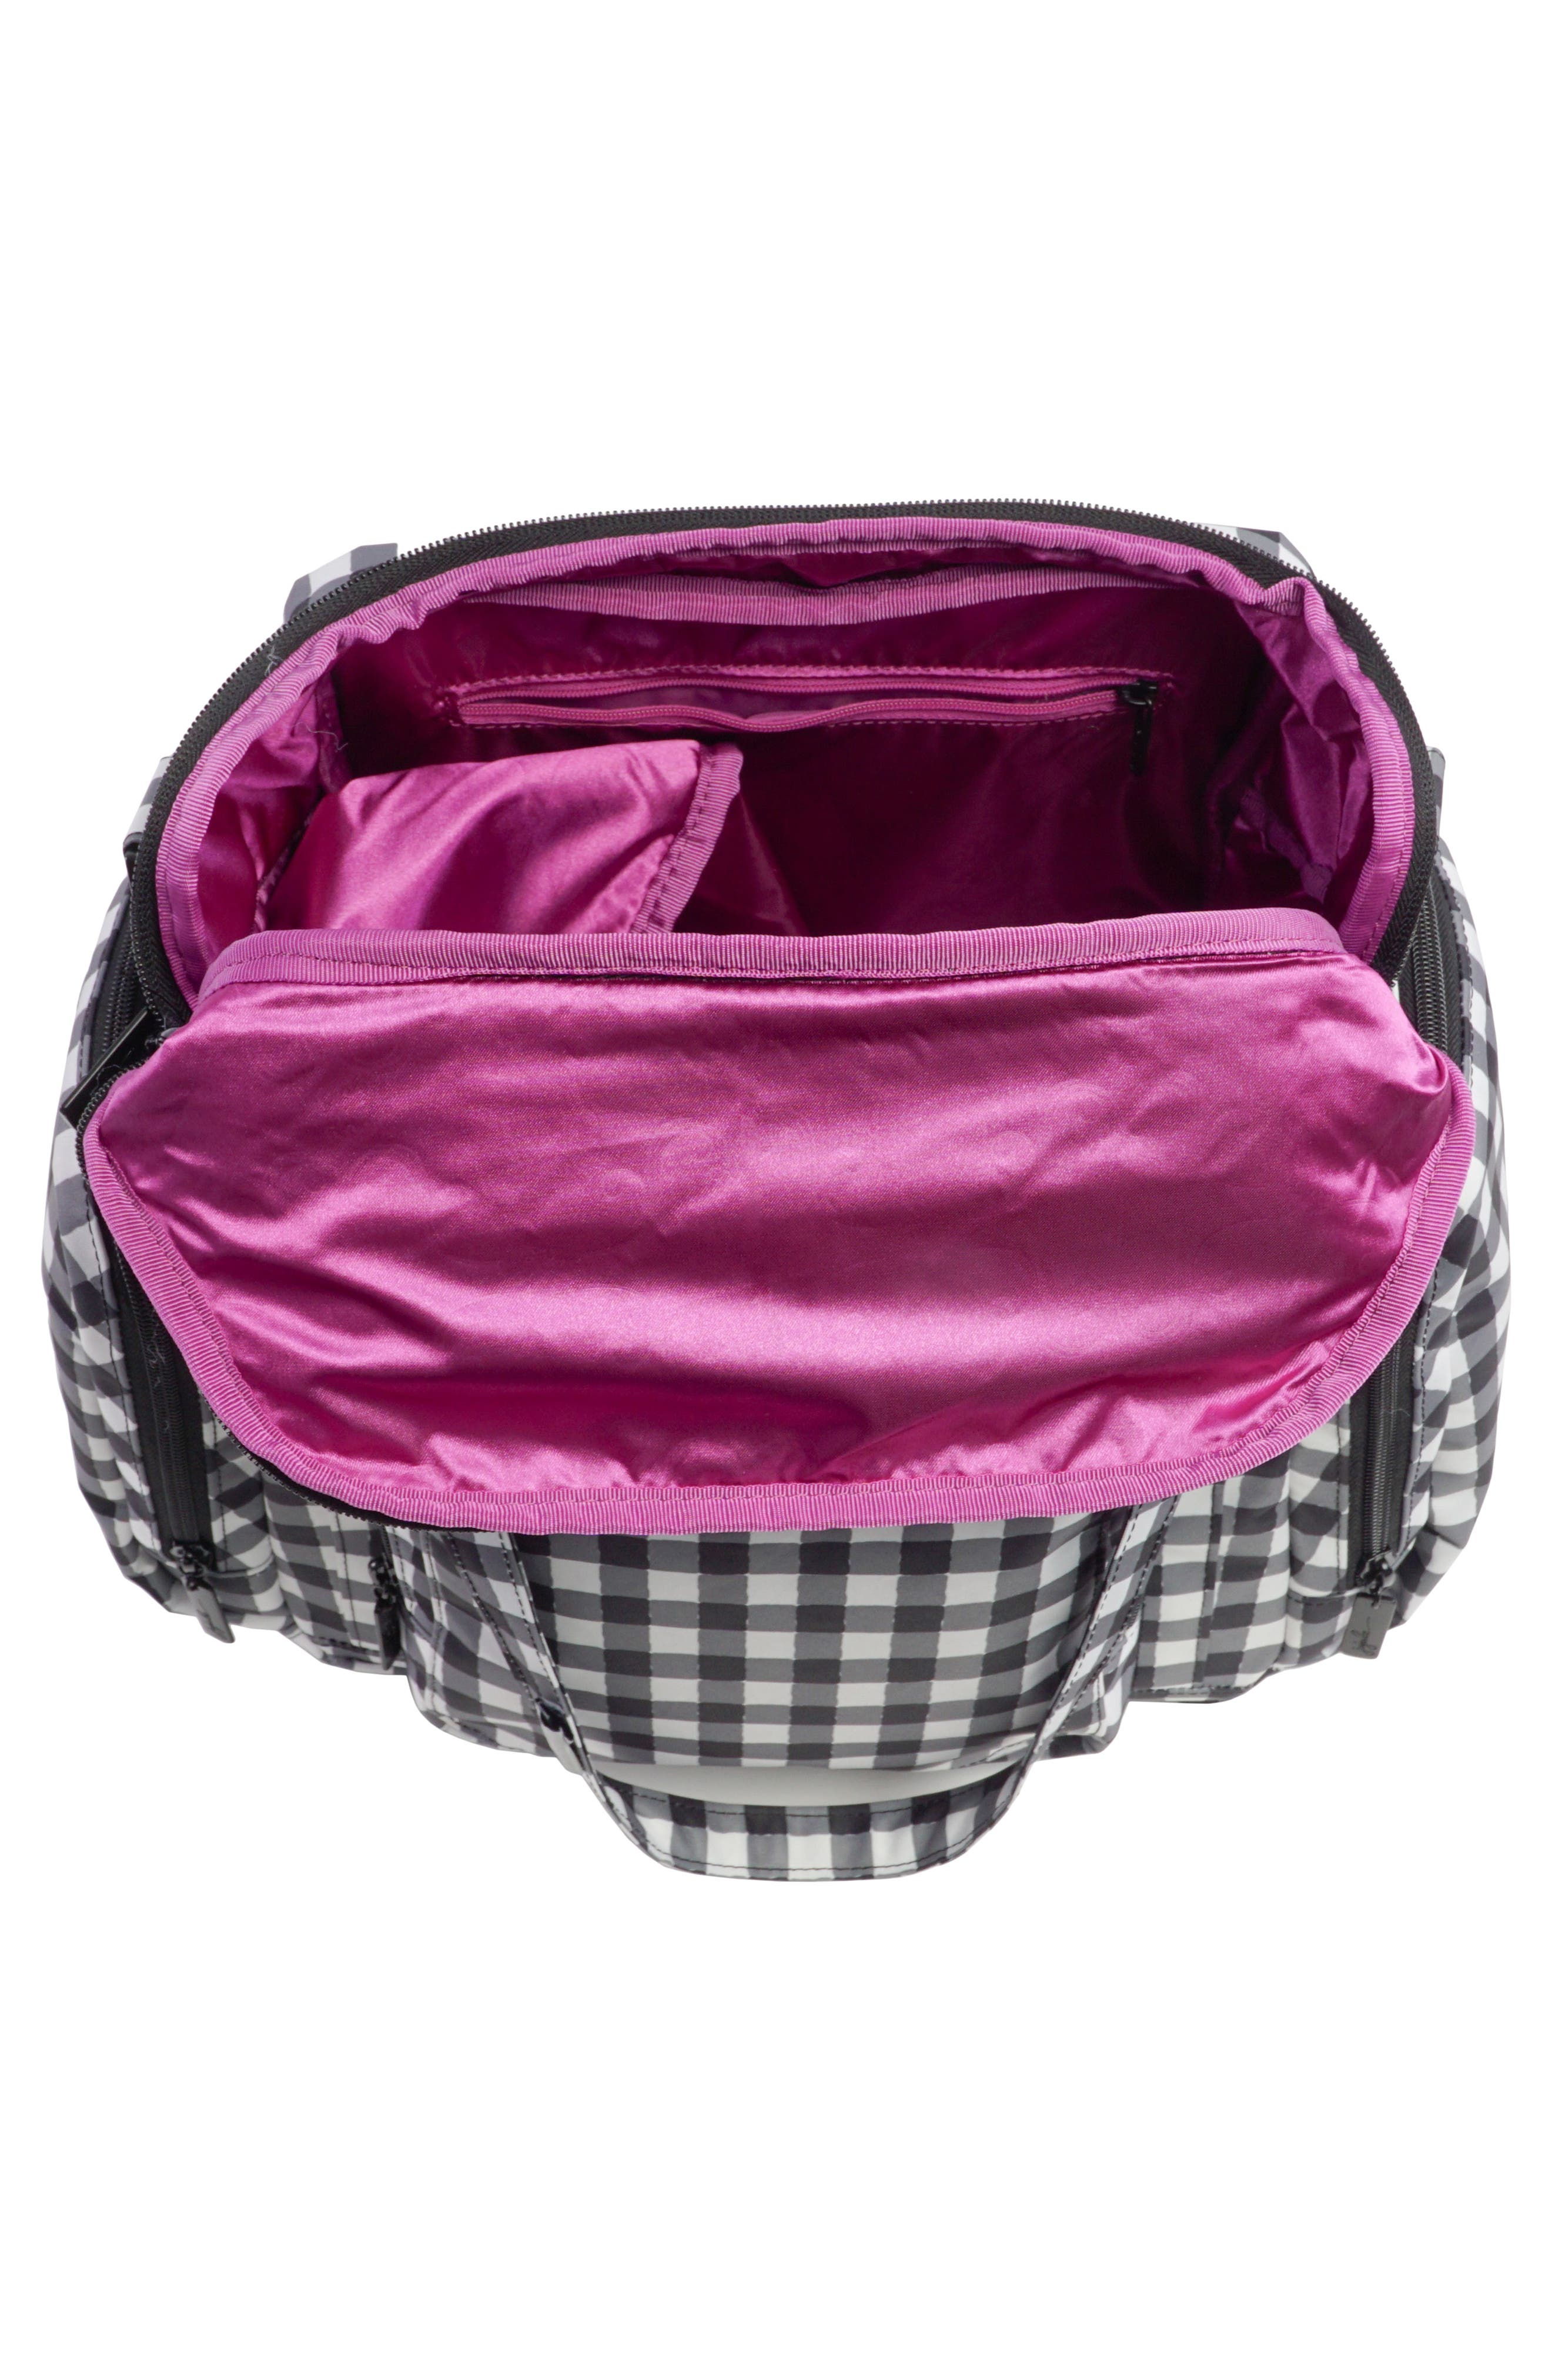 Onyx Be Supplied Pumping Bag,                             Alternate thumbnail 3, color,                             Gingham Style